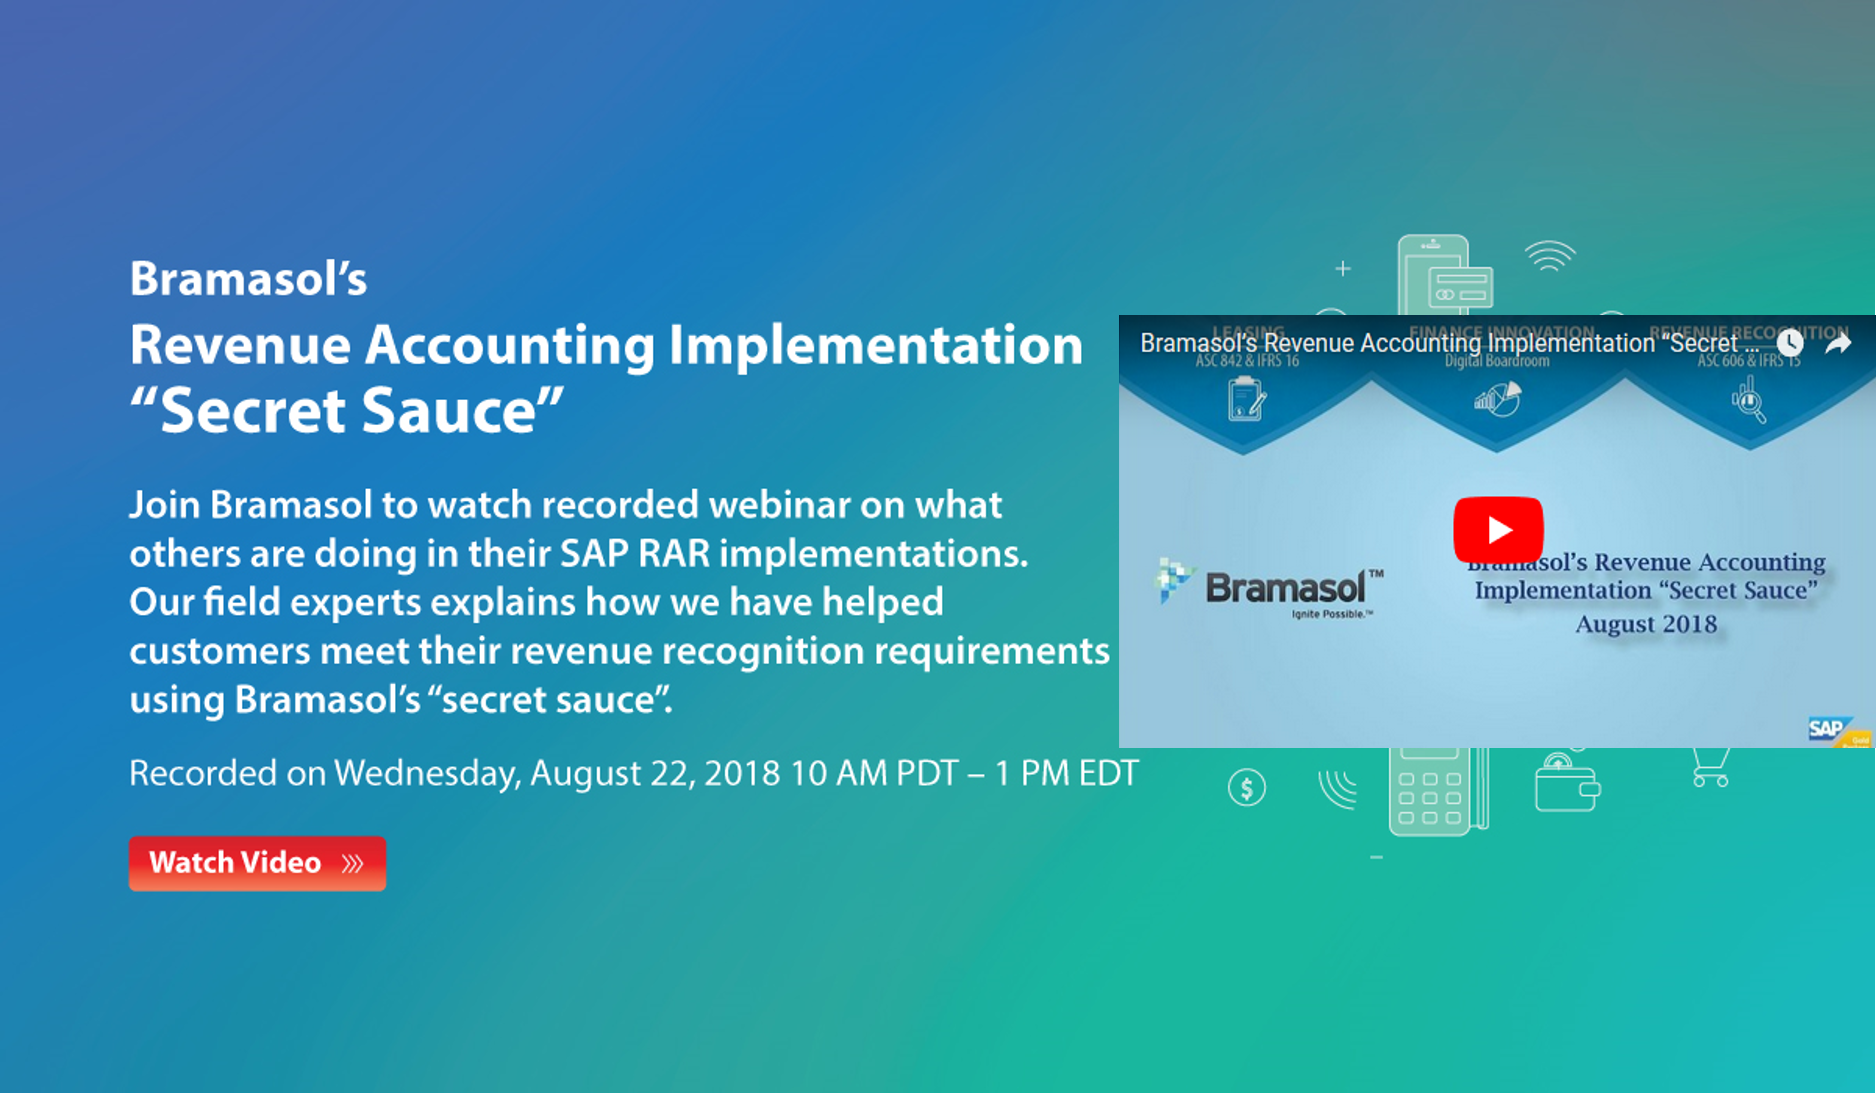 Bramasol's Revenuw Accounting Implementation Recored Webinar Aug 2018